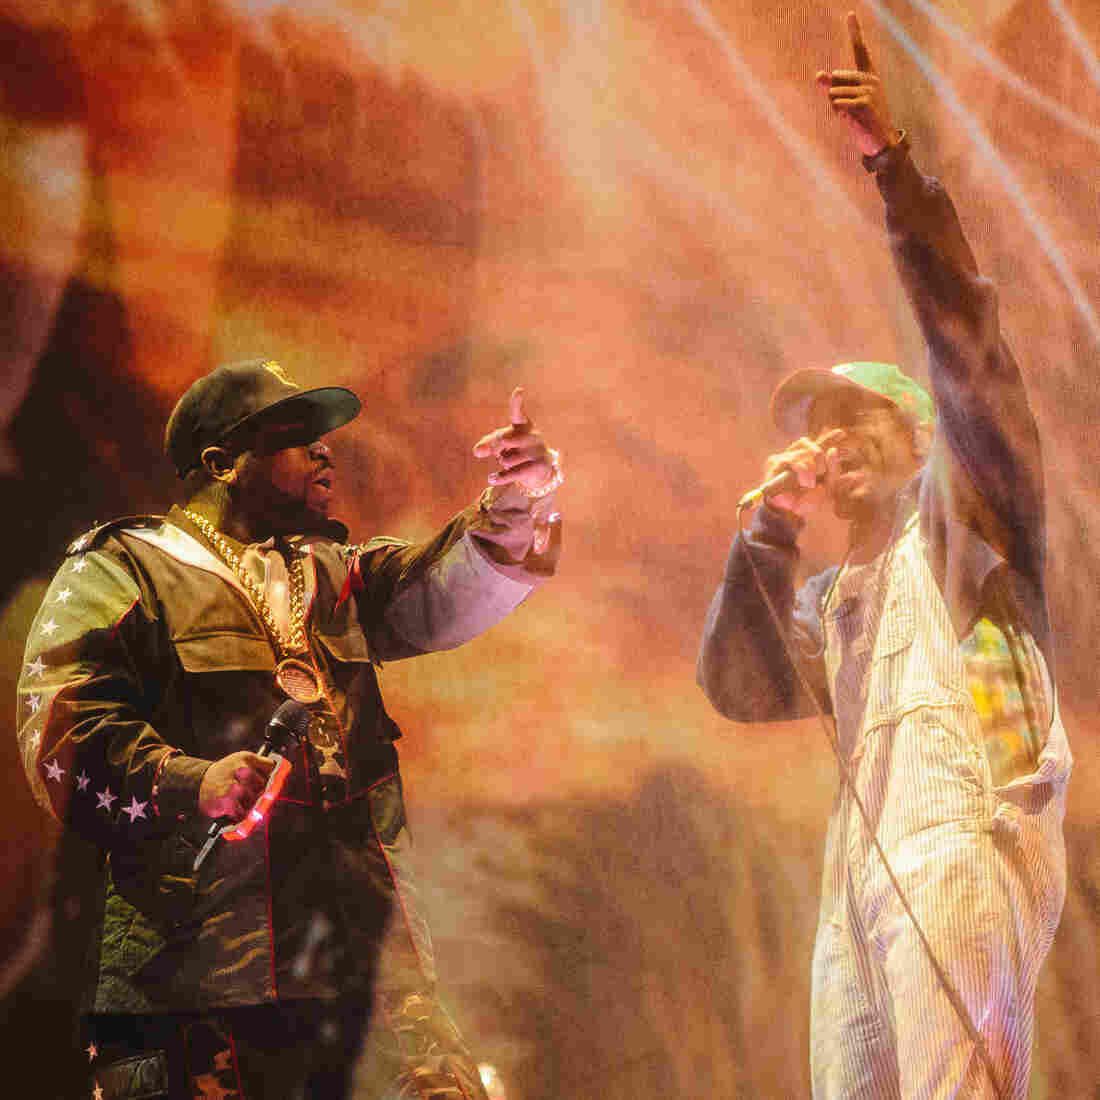 Big Boi (left) and Andre 3000 perform on stage at Coachella during the first stop on OutKast's reunion tour.